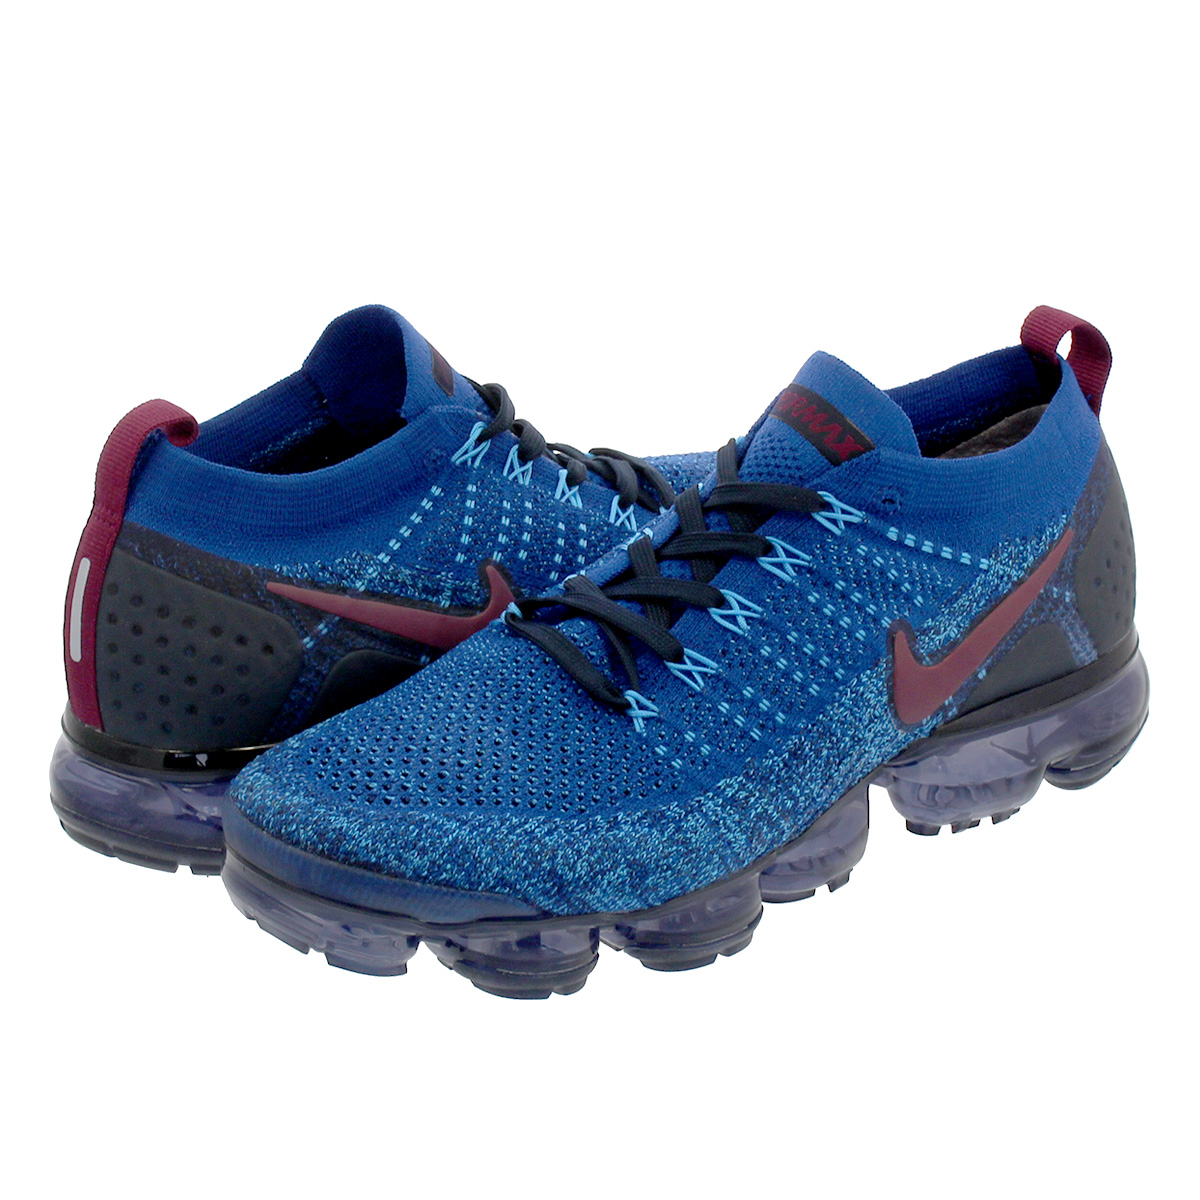 292bad36d69 NIKE AIR VAPORMAX FLYKNIT 2 Nike vapor max fried food knit 2 GYM BLUE BORDEAUX COLLEGE  NAVY BLUE GLOW 942